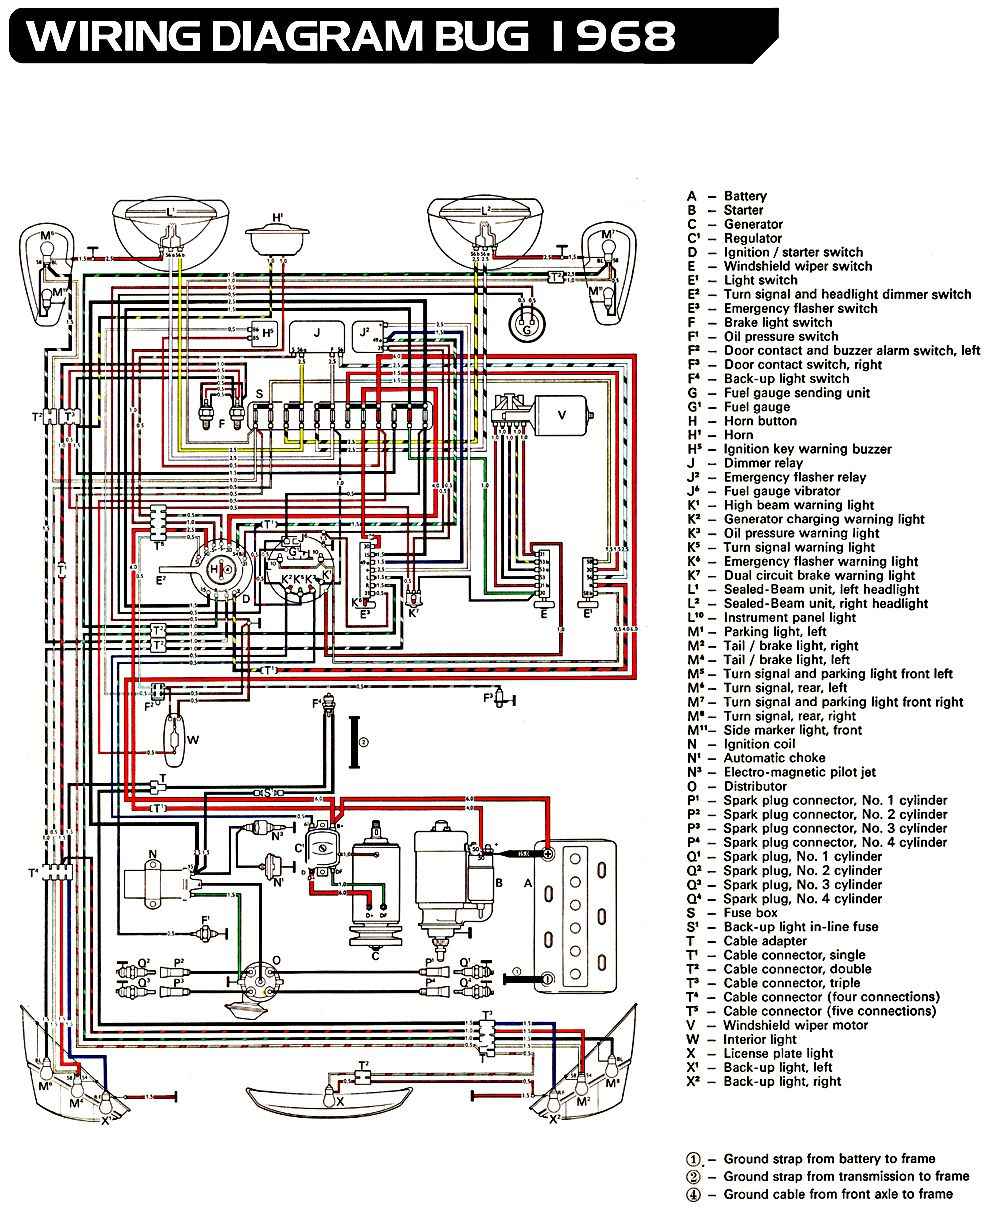 3a1908112d3826270ed5e3be362292bf vw bug ignition wiring diagram 73 vw wiring diagram free 1973 vw wiring diagram at mifinder.co